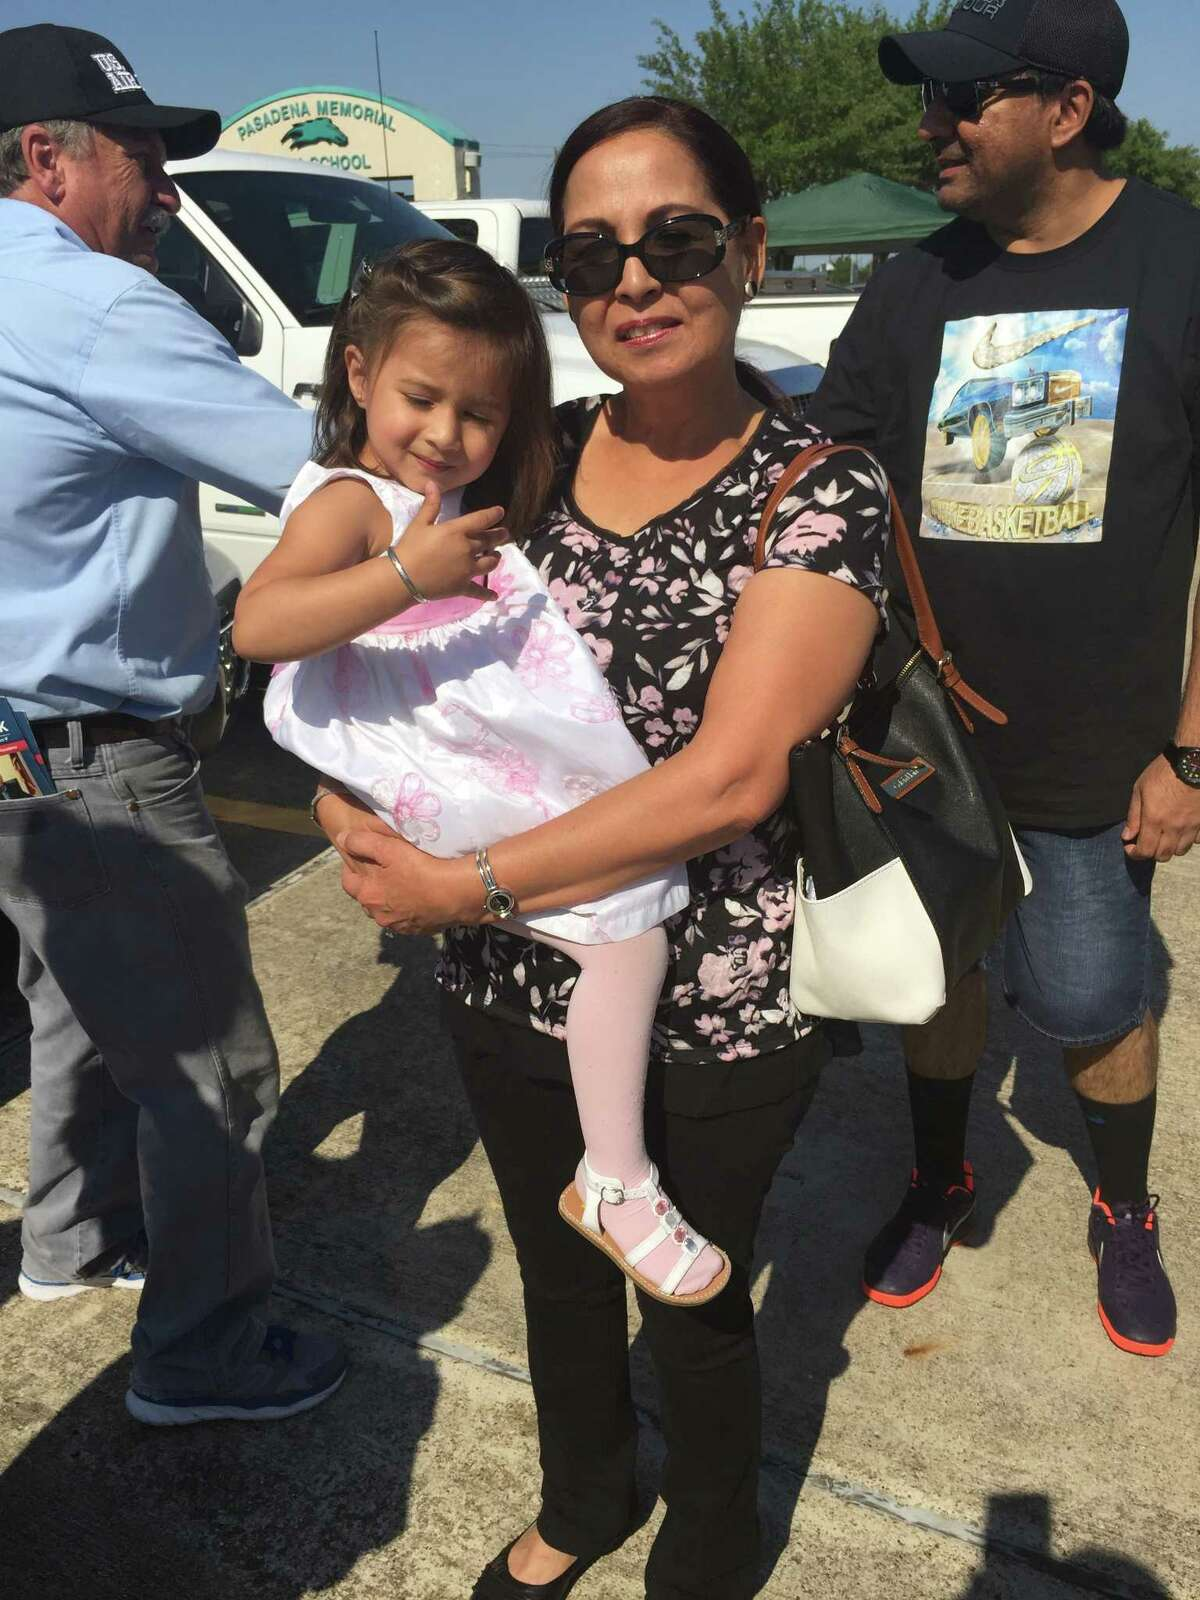 Grandmother and first-time voter in the Pasadena municipal election, Amber Memon, and her two year-old granddaughter, was all smiles outside the polls at Pasadena Memorial High School on Election Day.